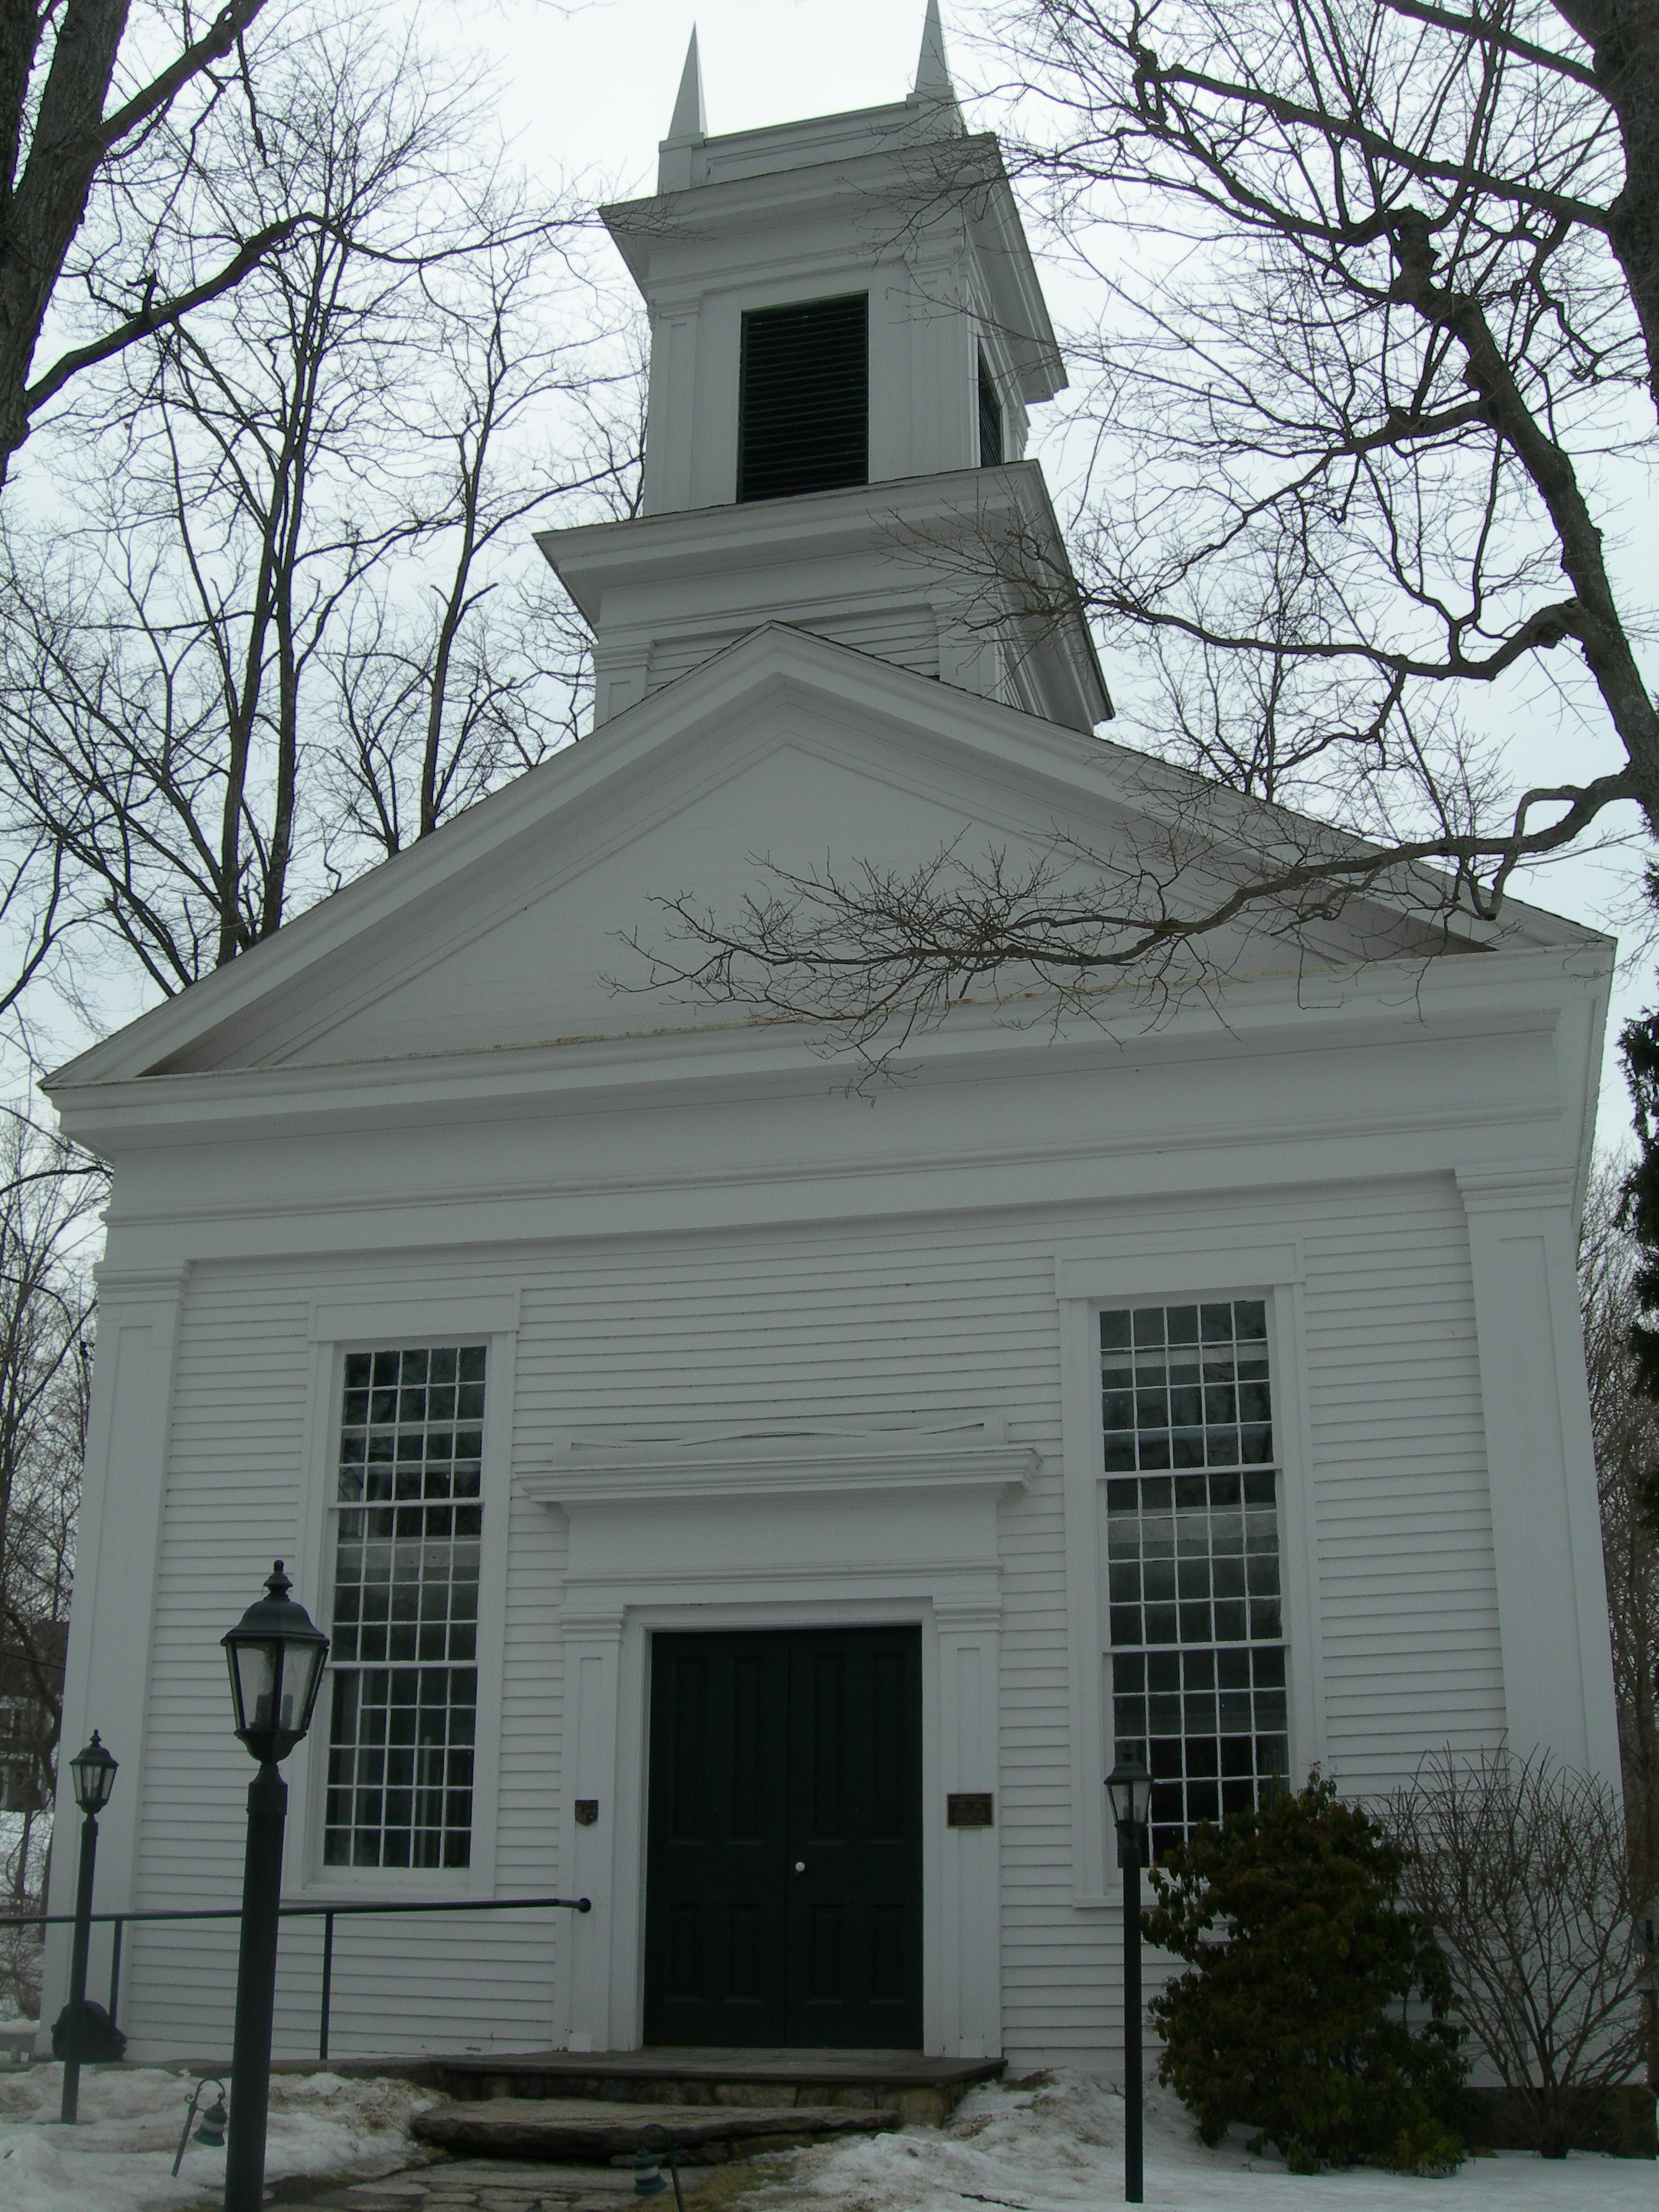 RidgeburyCongregational